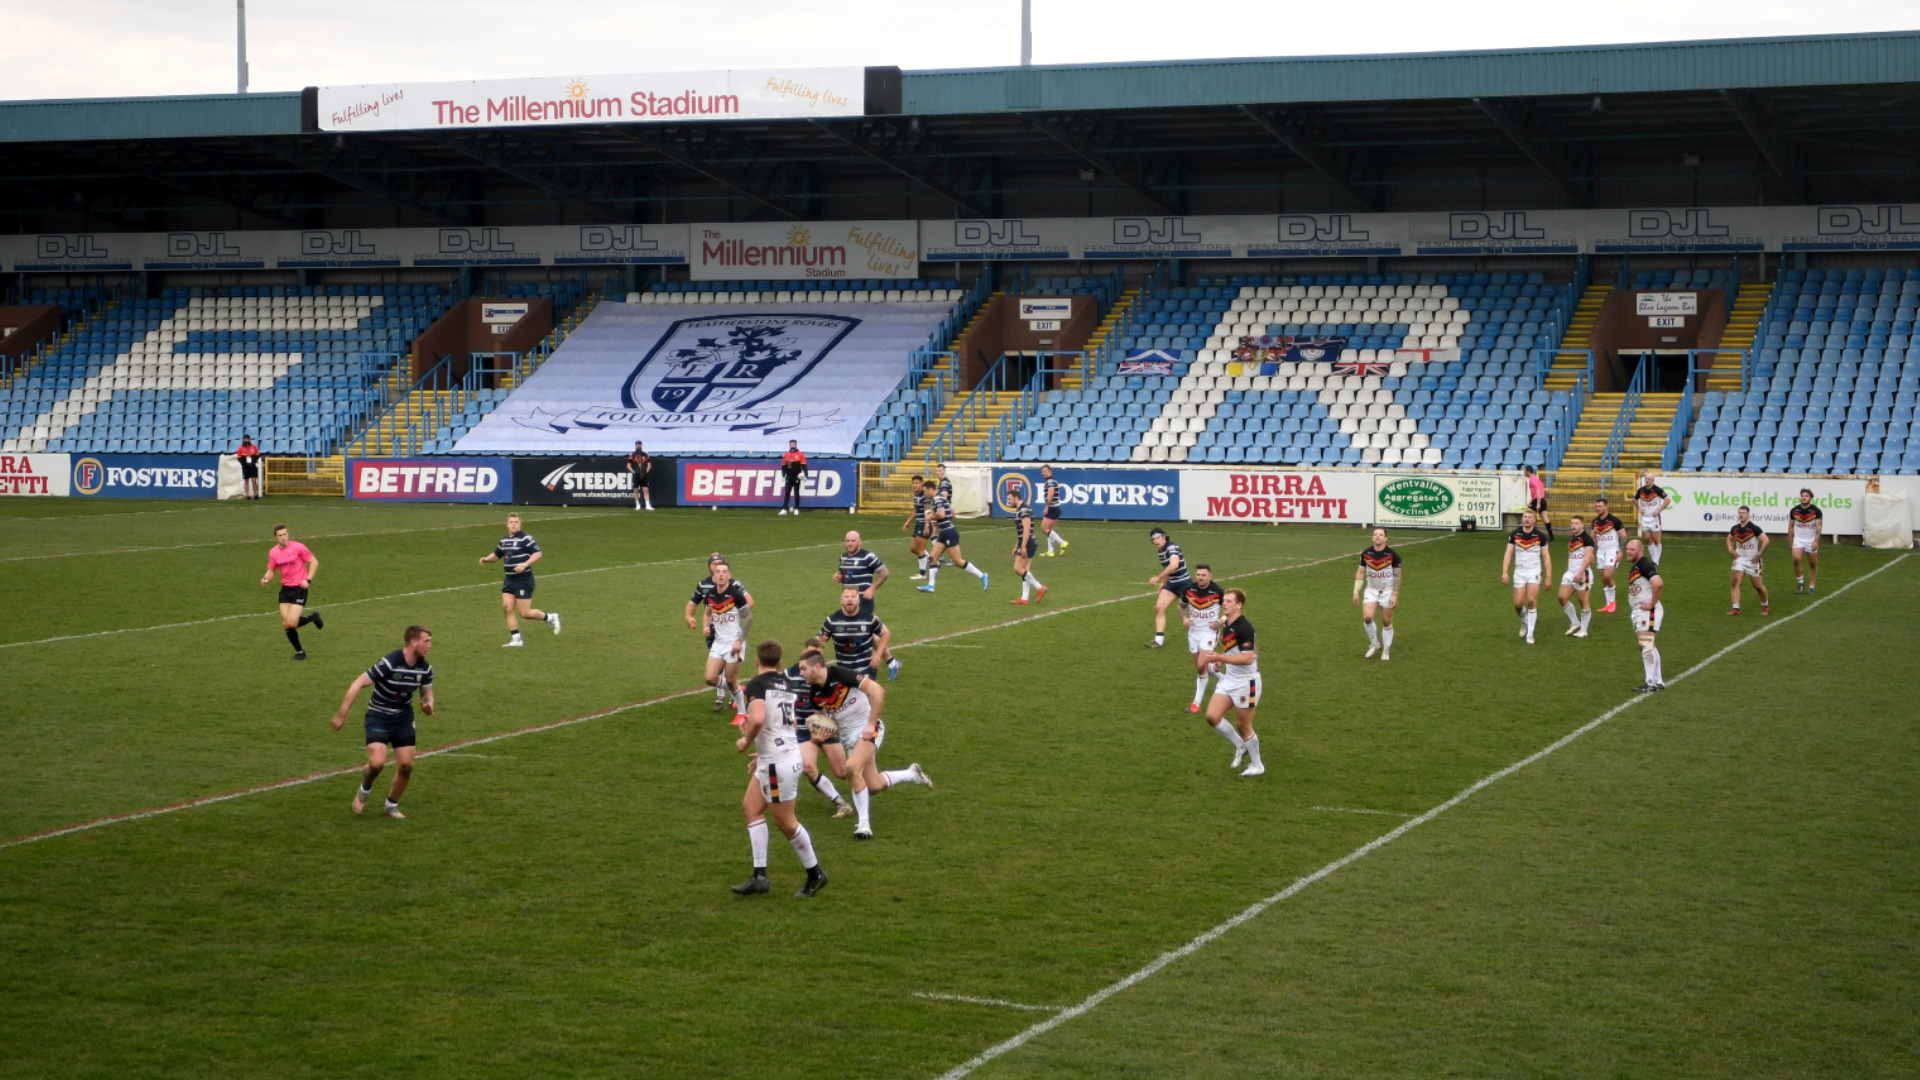 George Flanagan has been fined £250 and suspended for 10 matches for a 'Grade F' offence in the clash with Featherstone Rovers.